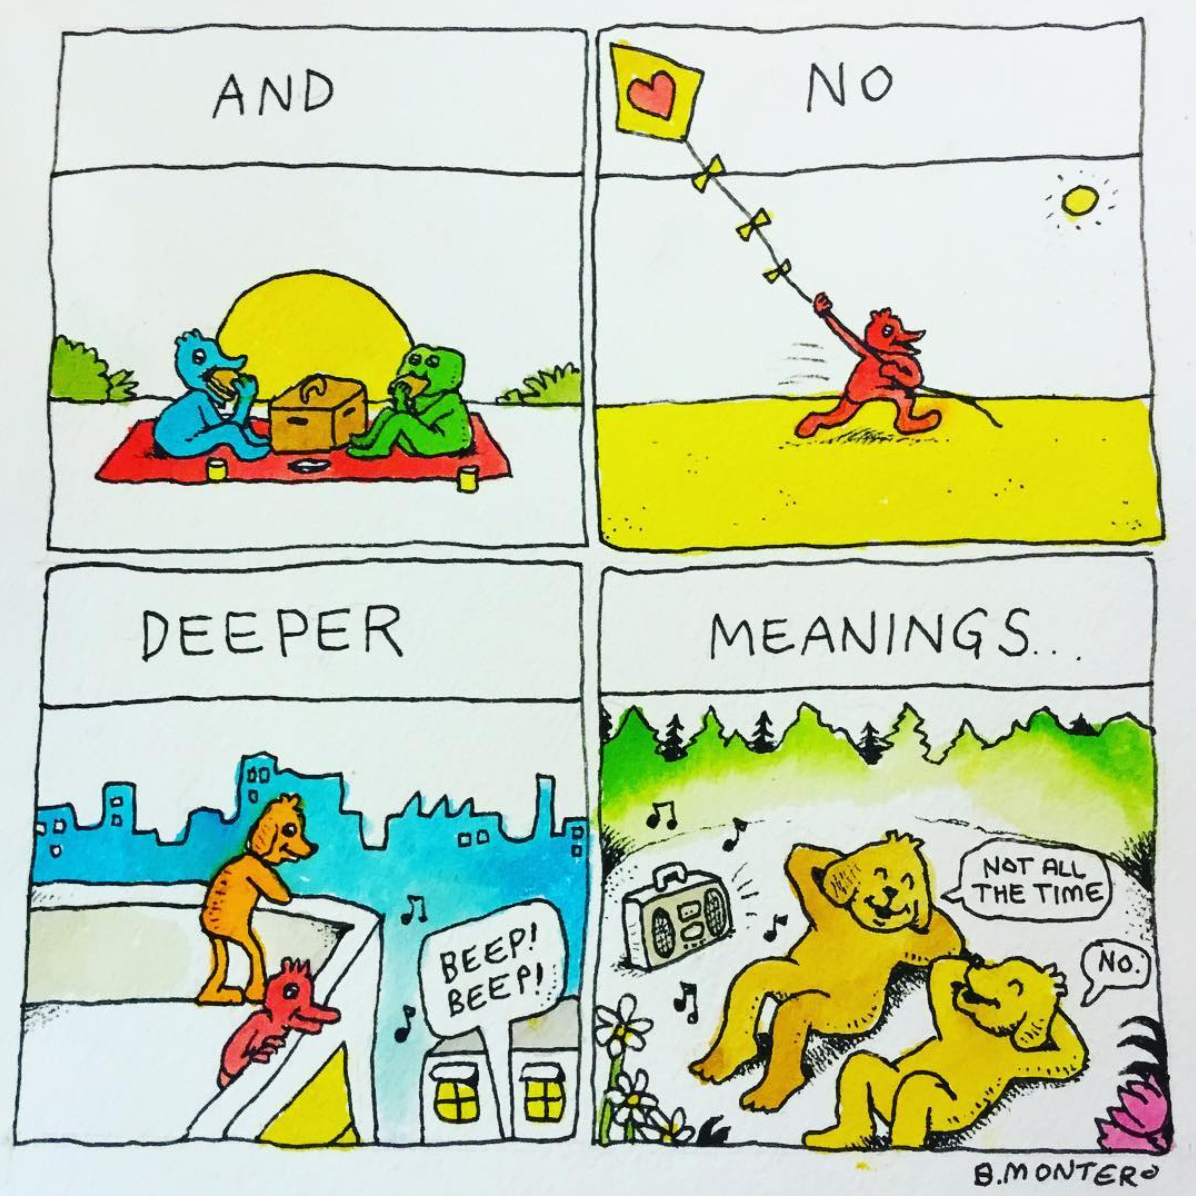 """a Bjenny Montero comic. There are four panels. The first panel has two humanoid characters, one a blue bird and the other a green frog, eating at a picnic. The banner says """"and."""" The next panel has a red, humanoid bird flying a kite. The banner says """"no."""" The third panel has two humanoid animals, an orange dog and the red bird from before, looking off the ledge of a building. The text """"beep! beep!"""" reads from a text bubble pointing below them. The banner reads """"deeper."""" Finally, there are two orange, humanoid dogs laying on their backs and listening to music in the fourth panel. The banner reads """"meanings..."""" while the first dog says """"not all the time"""" and the second dog says """"no."""" They're smiling. Together, the panels read """"and no more deeper meanings."""""""